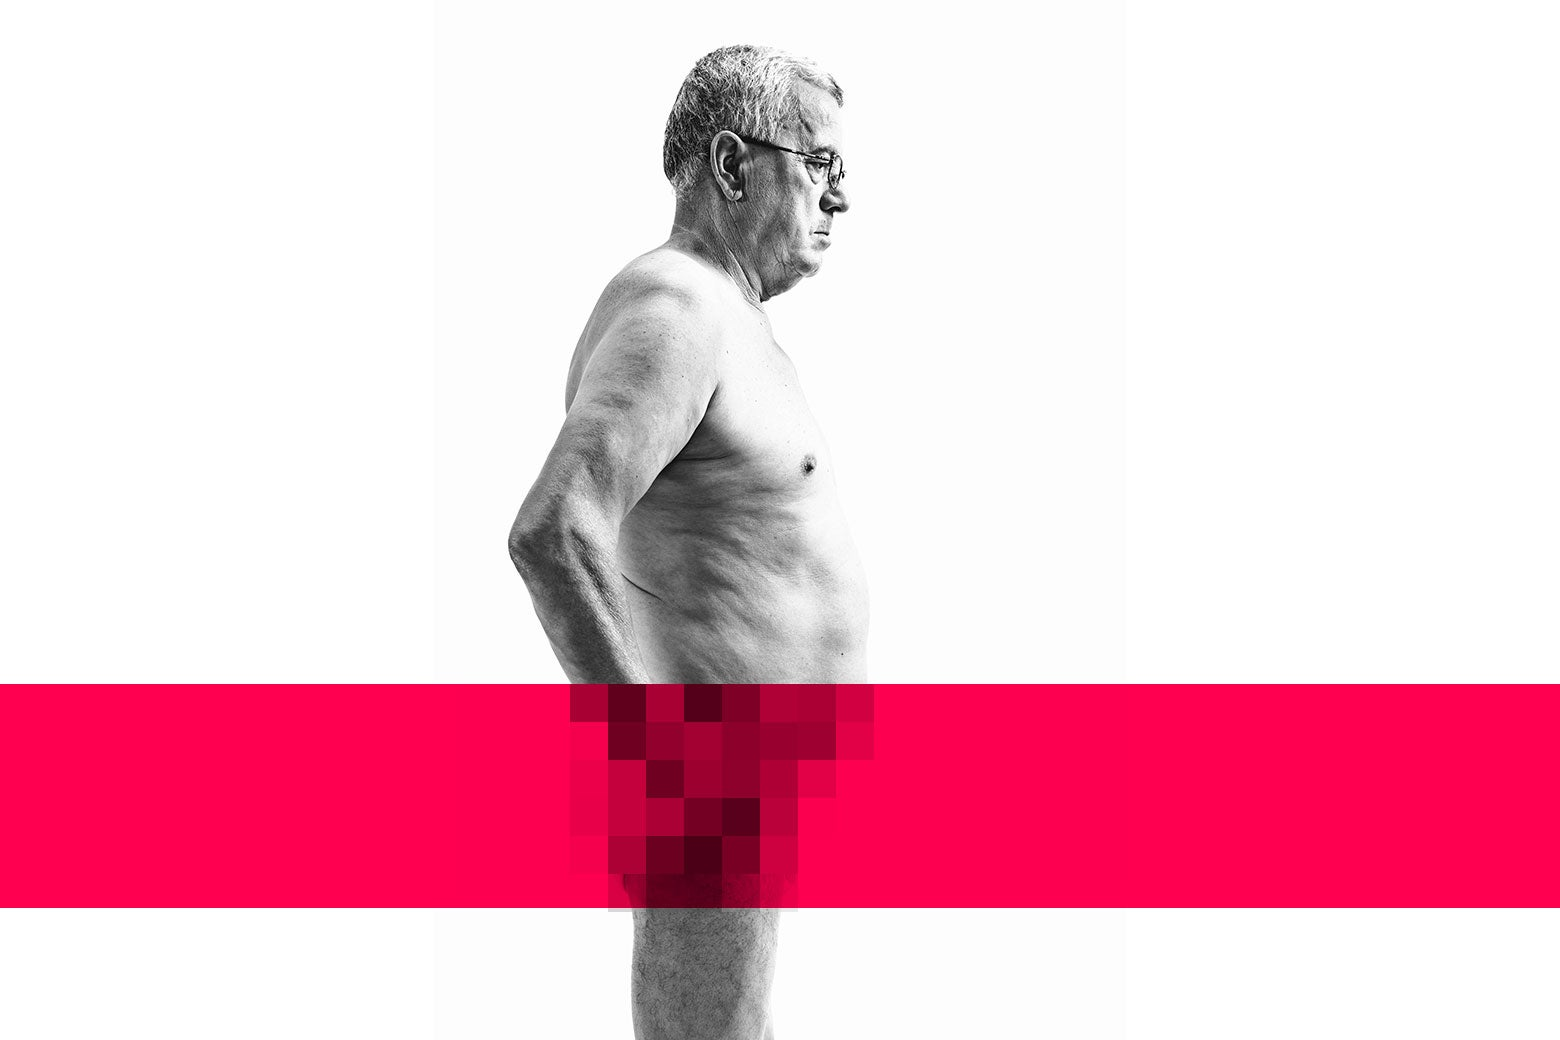 An older man, naked, with a red bar and pixelation across his nether regions.